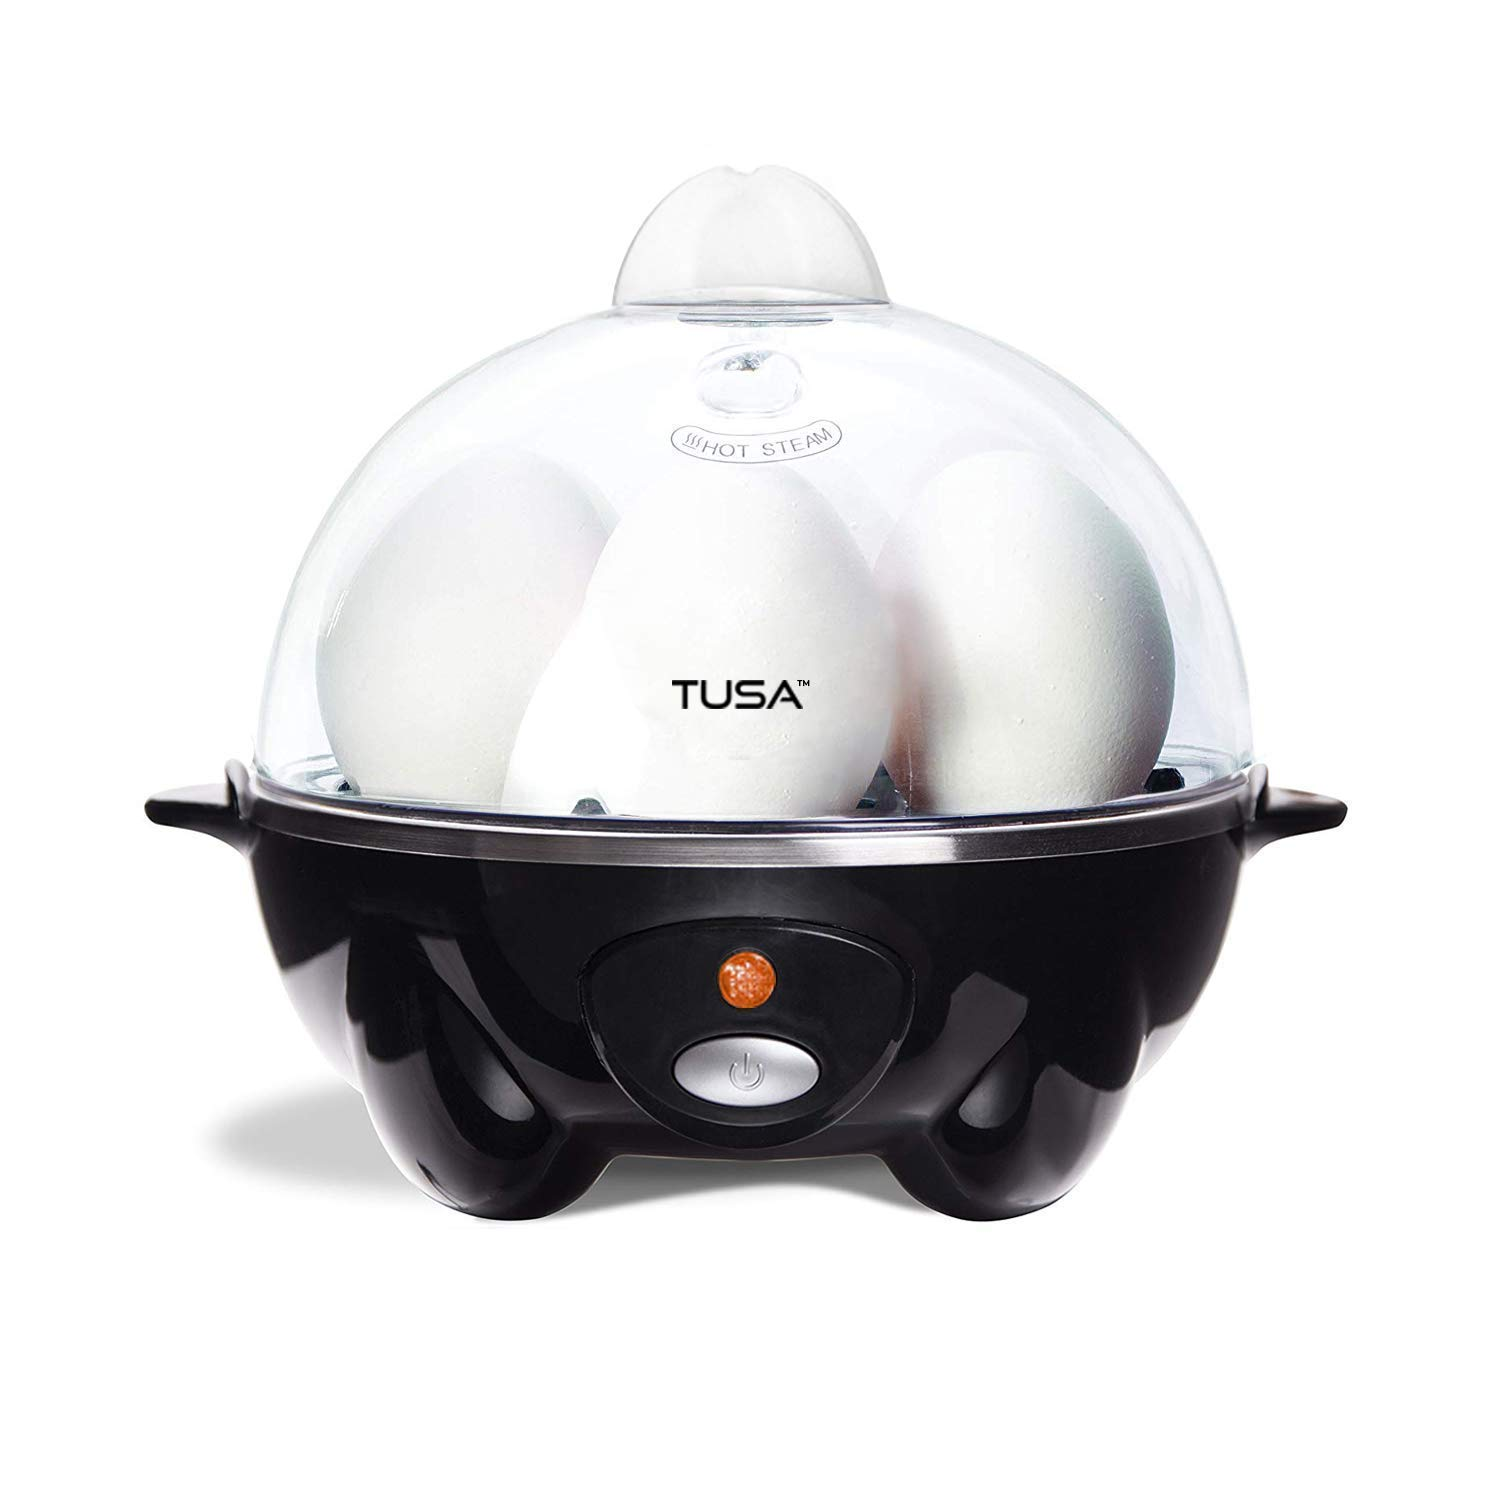 TUSA Electric 7 Eggs Capacity Egg Boiler